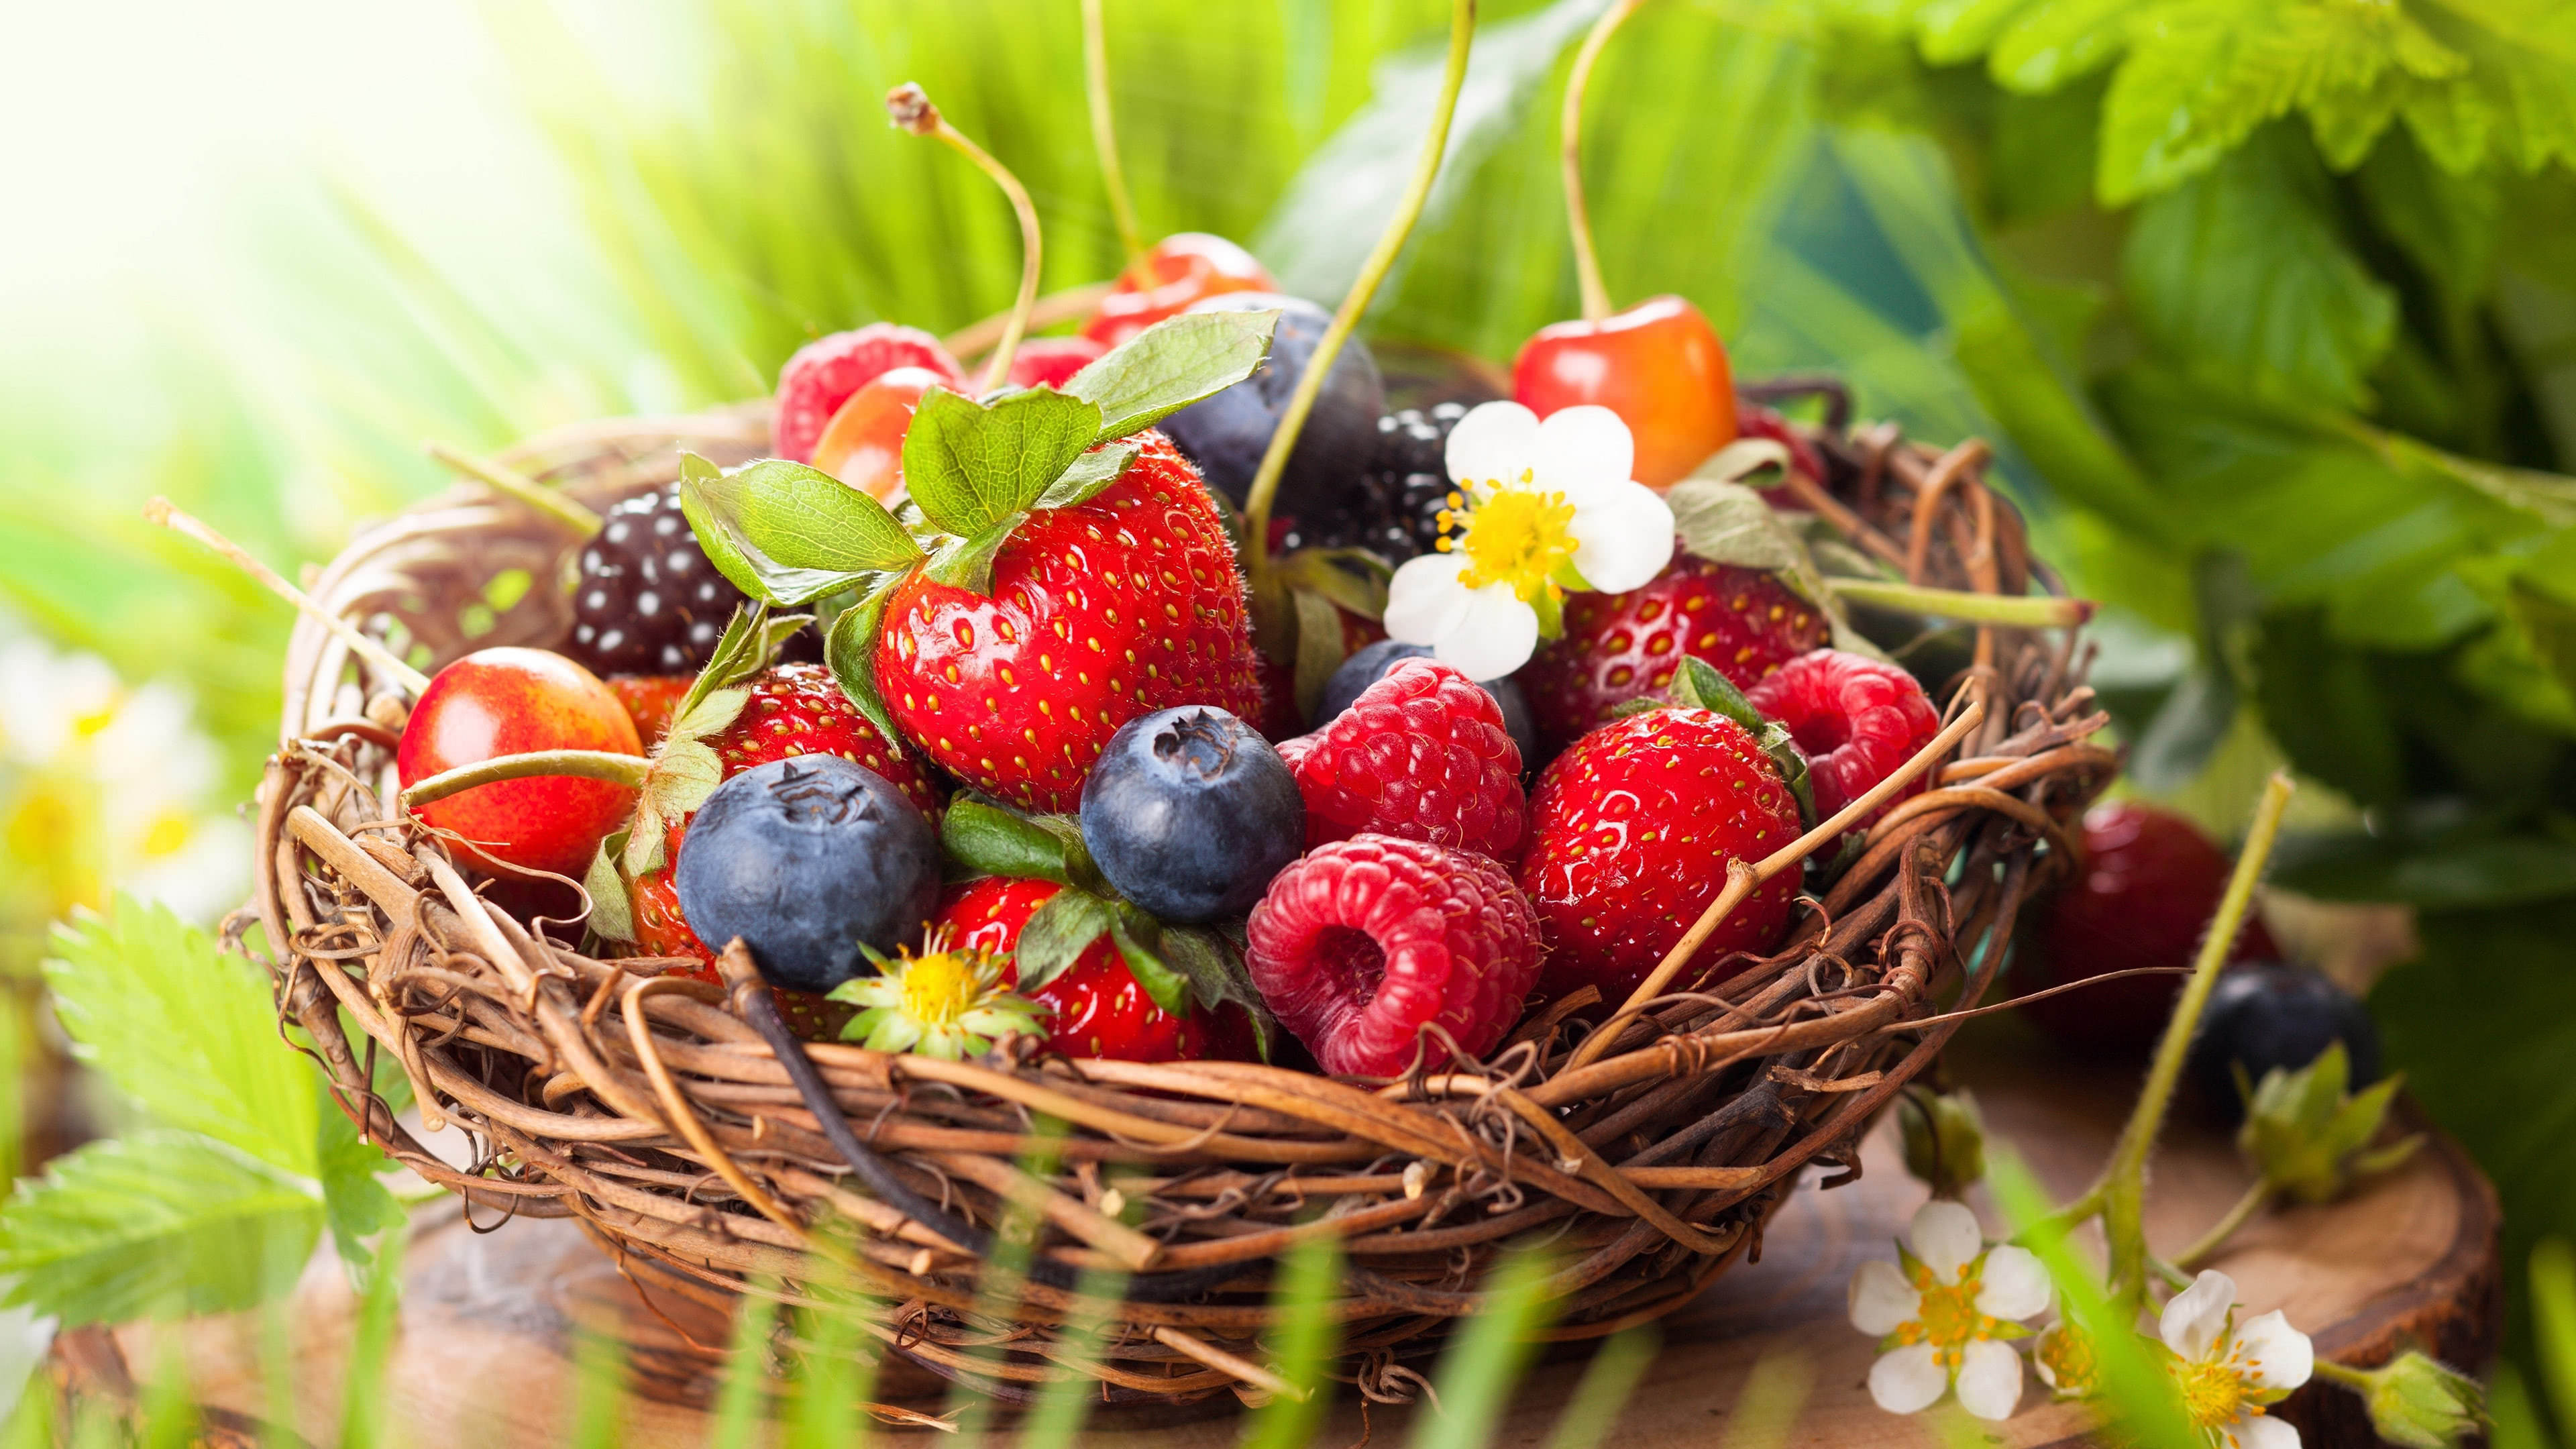 strawberries raspberries blueberries cherries basket uhd 4k wallpaper